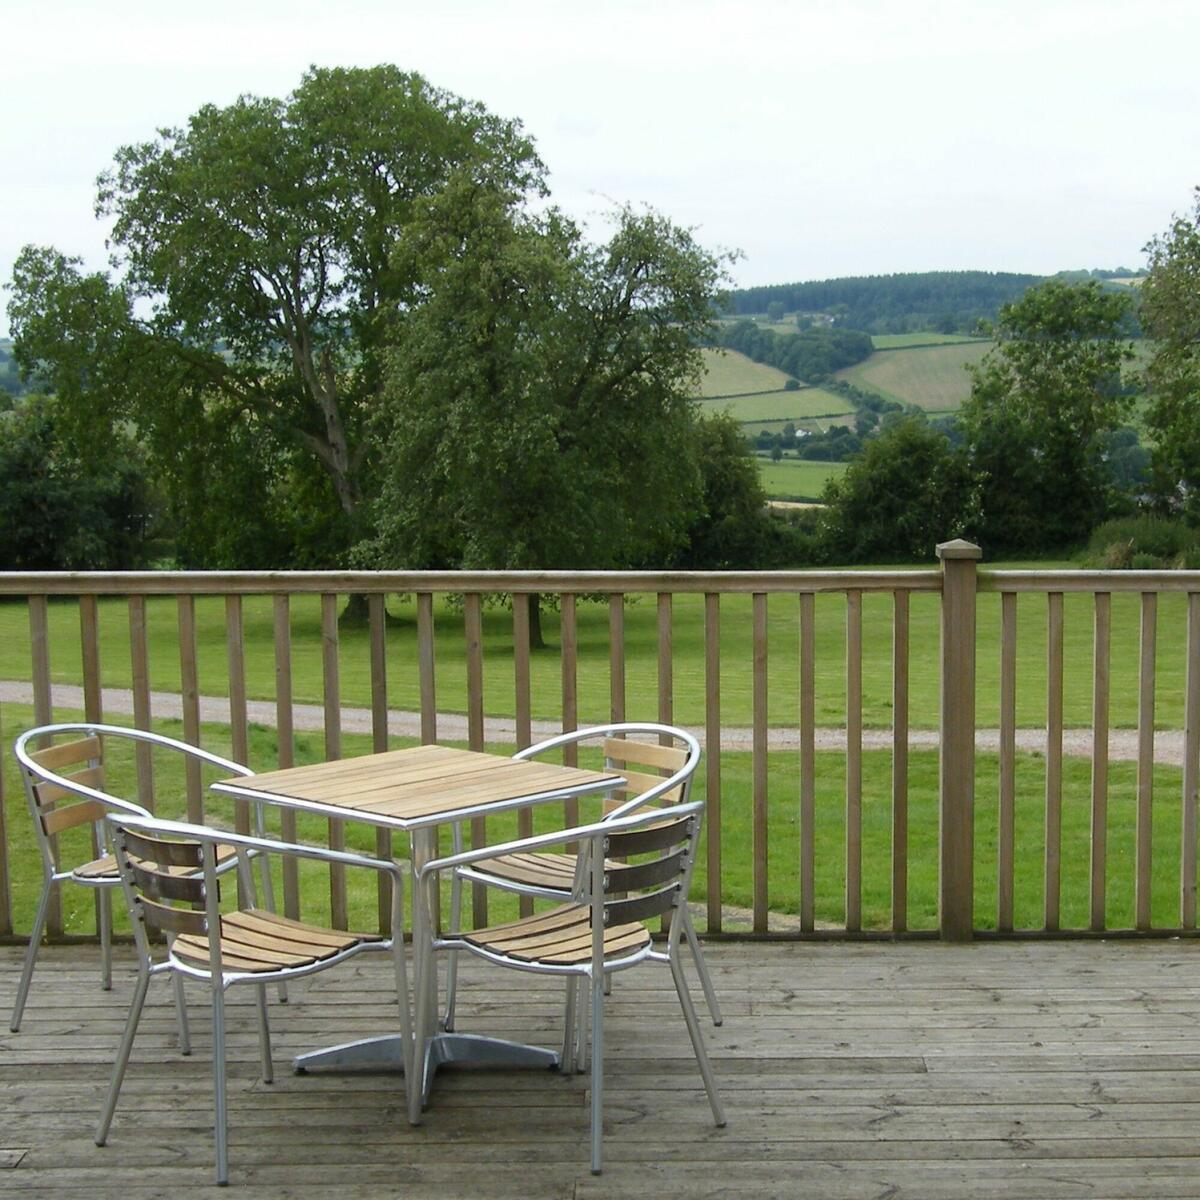 Partial Decking View